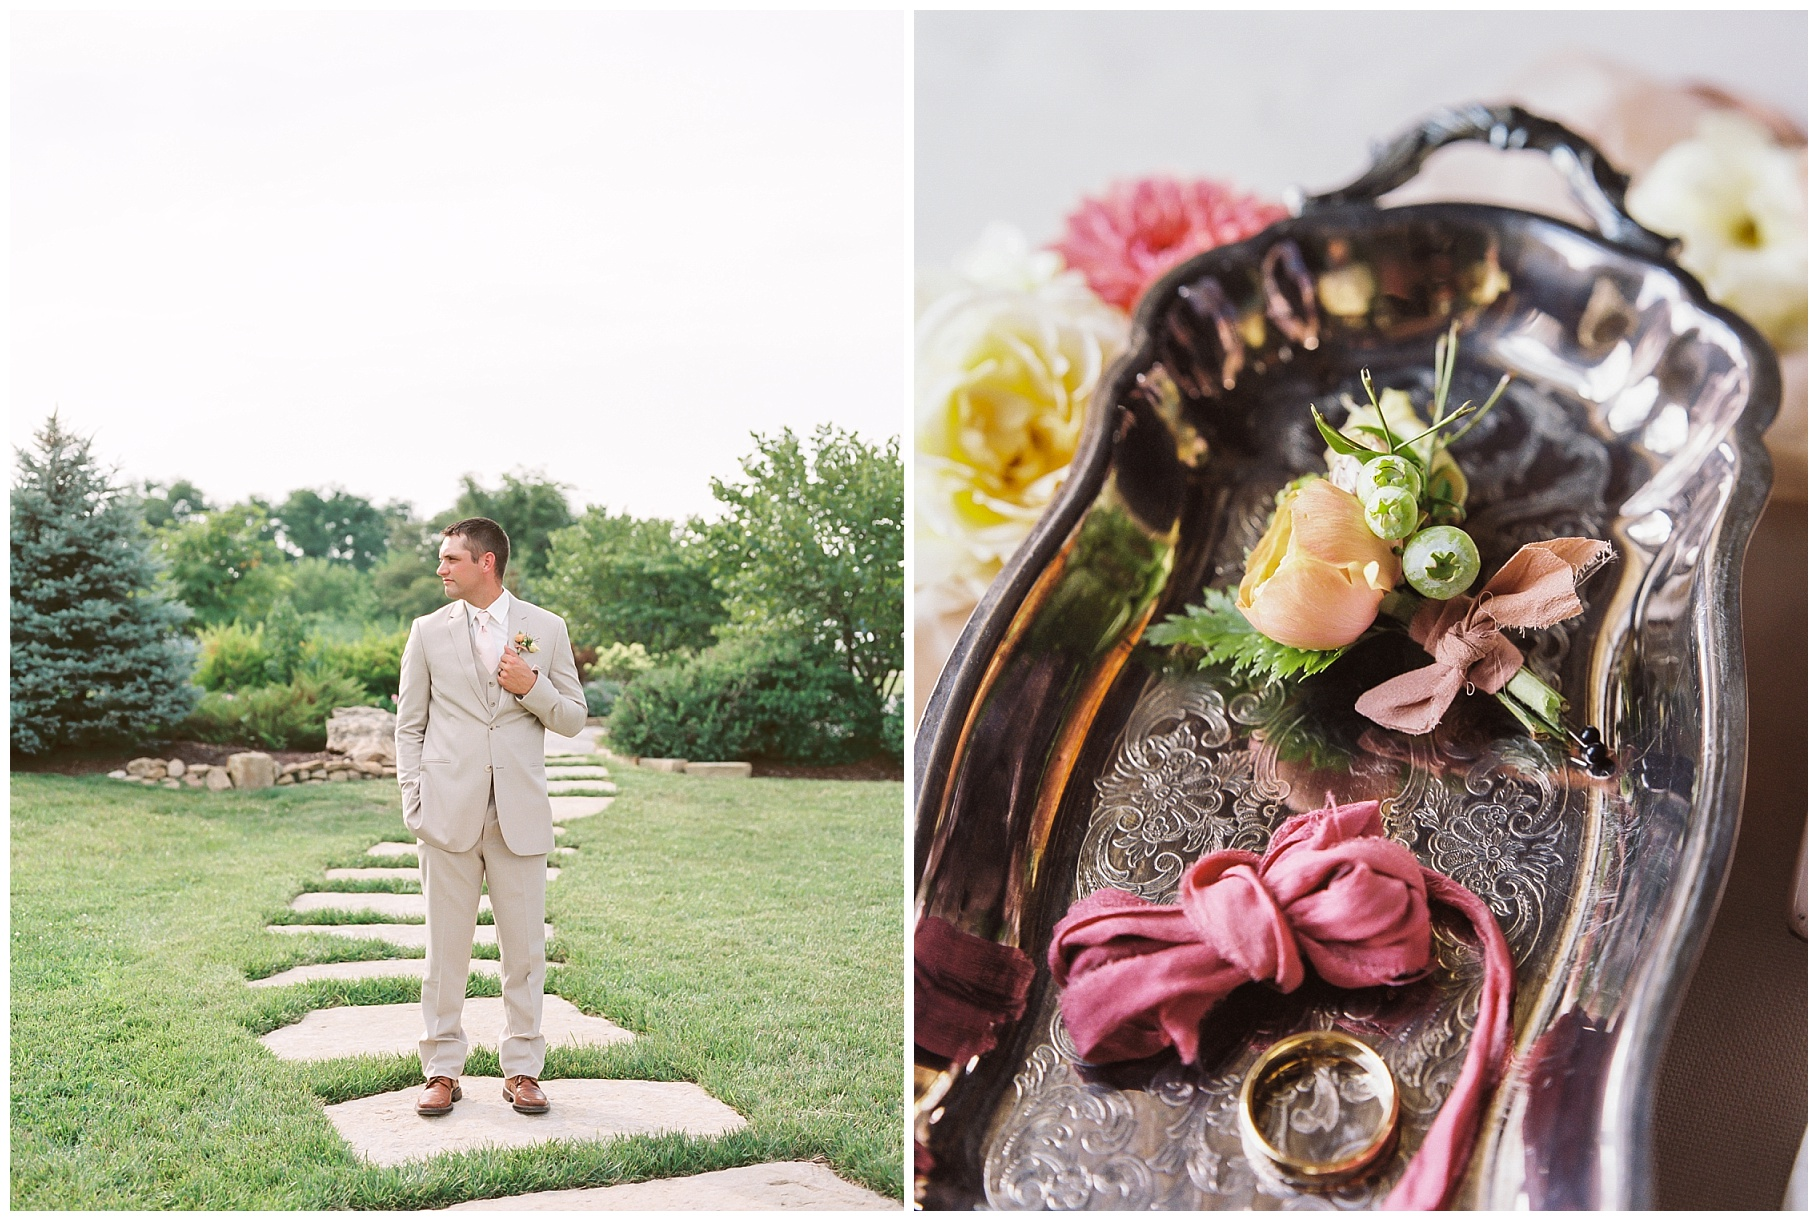 Late Summer Wedding With Pastel Toned Soiree at Blue Bell Farm by Kelsi Kliethermes Photography Best Columbia Missouri Wedding Photographer_0057.jpg